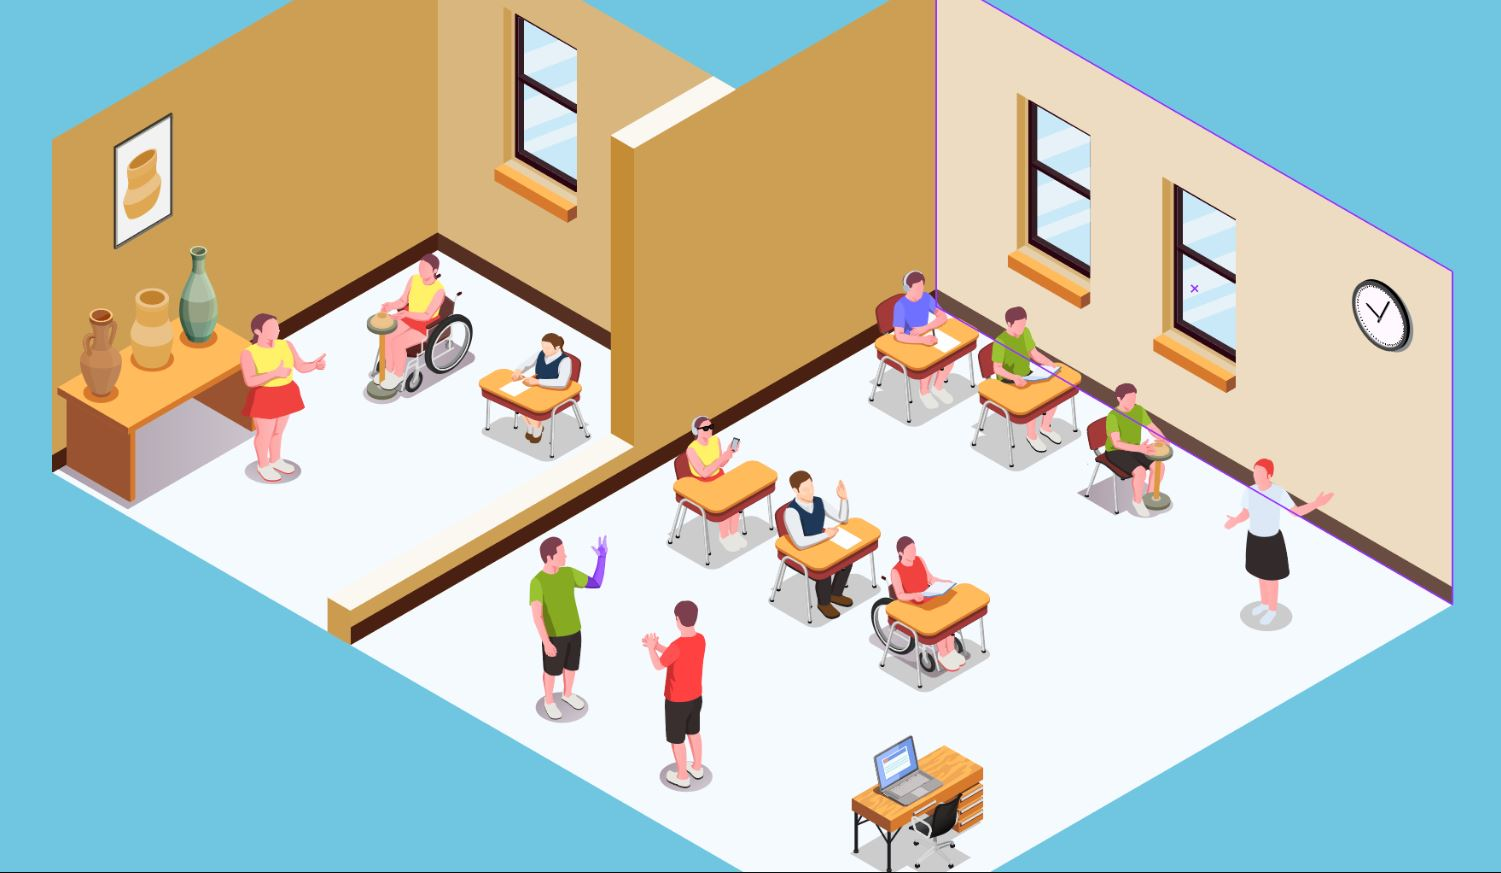 Graphic art of two classrooms with students and teachers